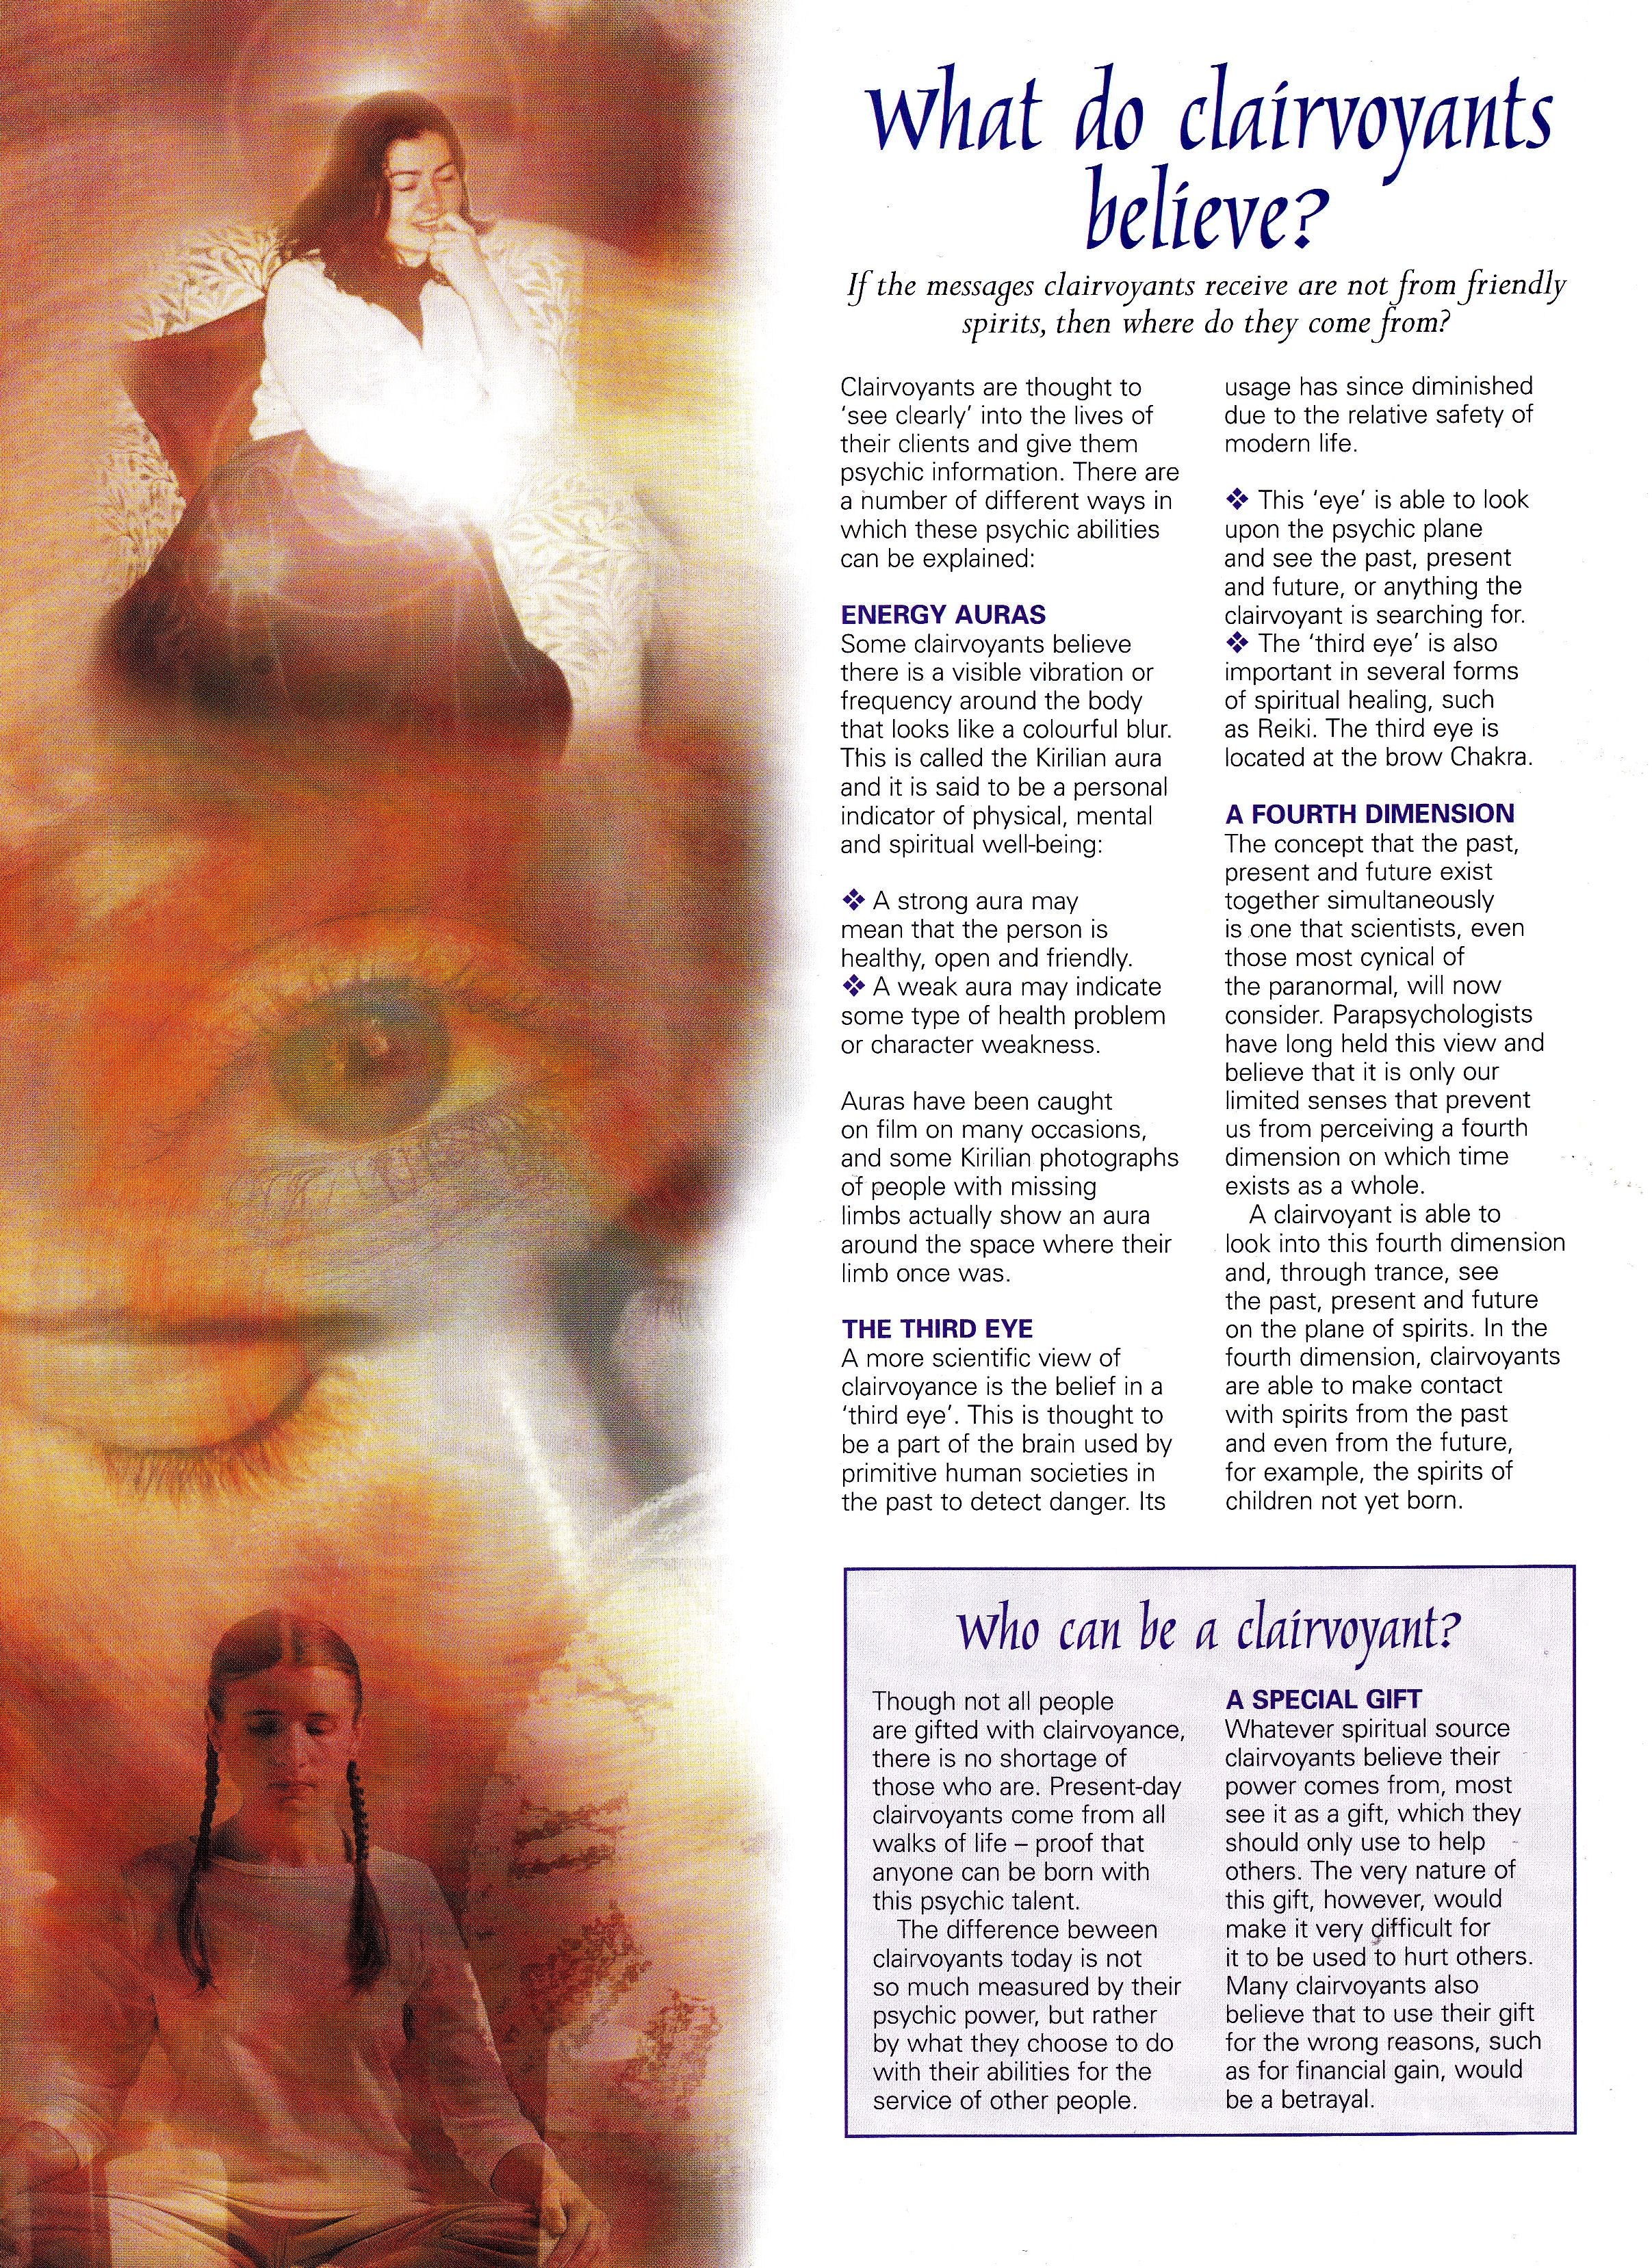 Divination: What Do #Clairvoyants Believe?